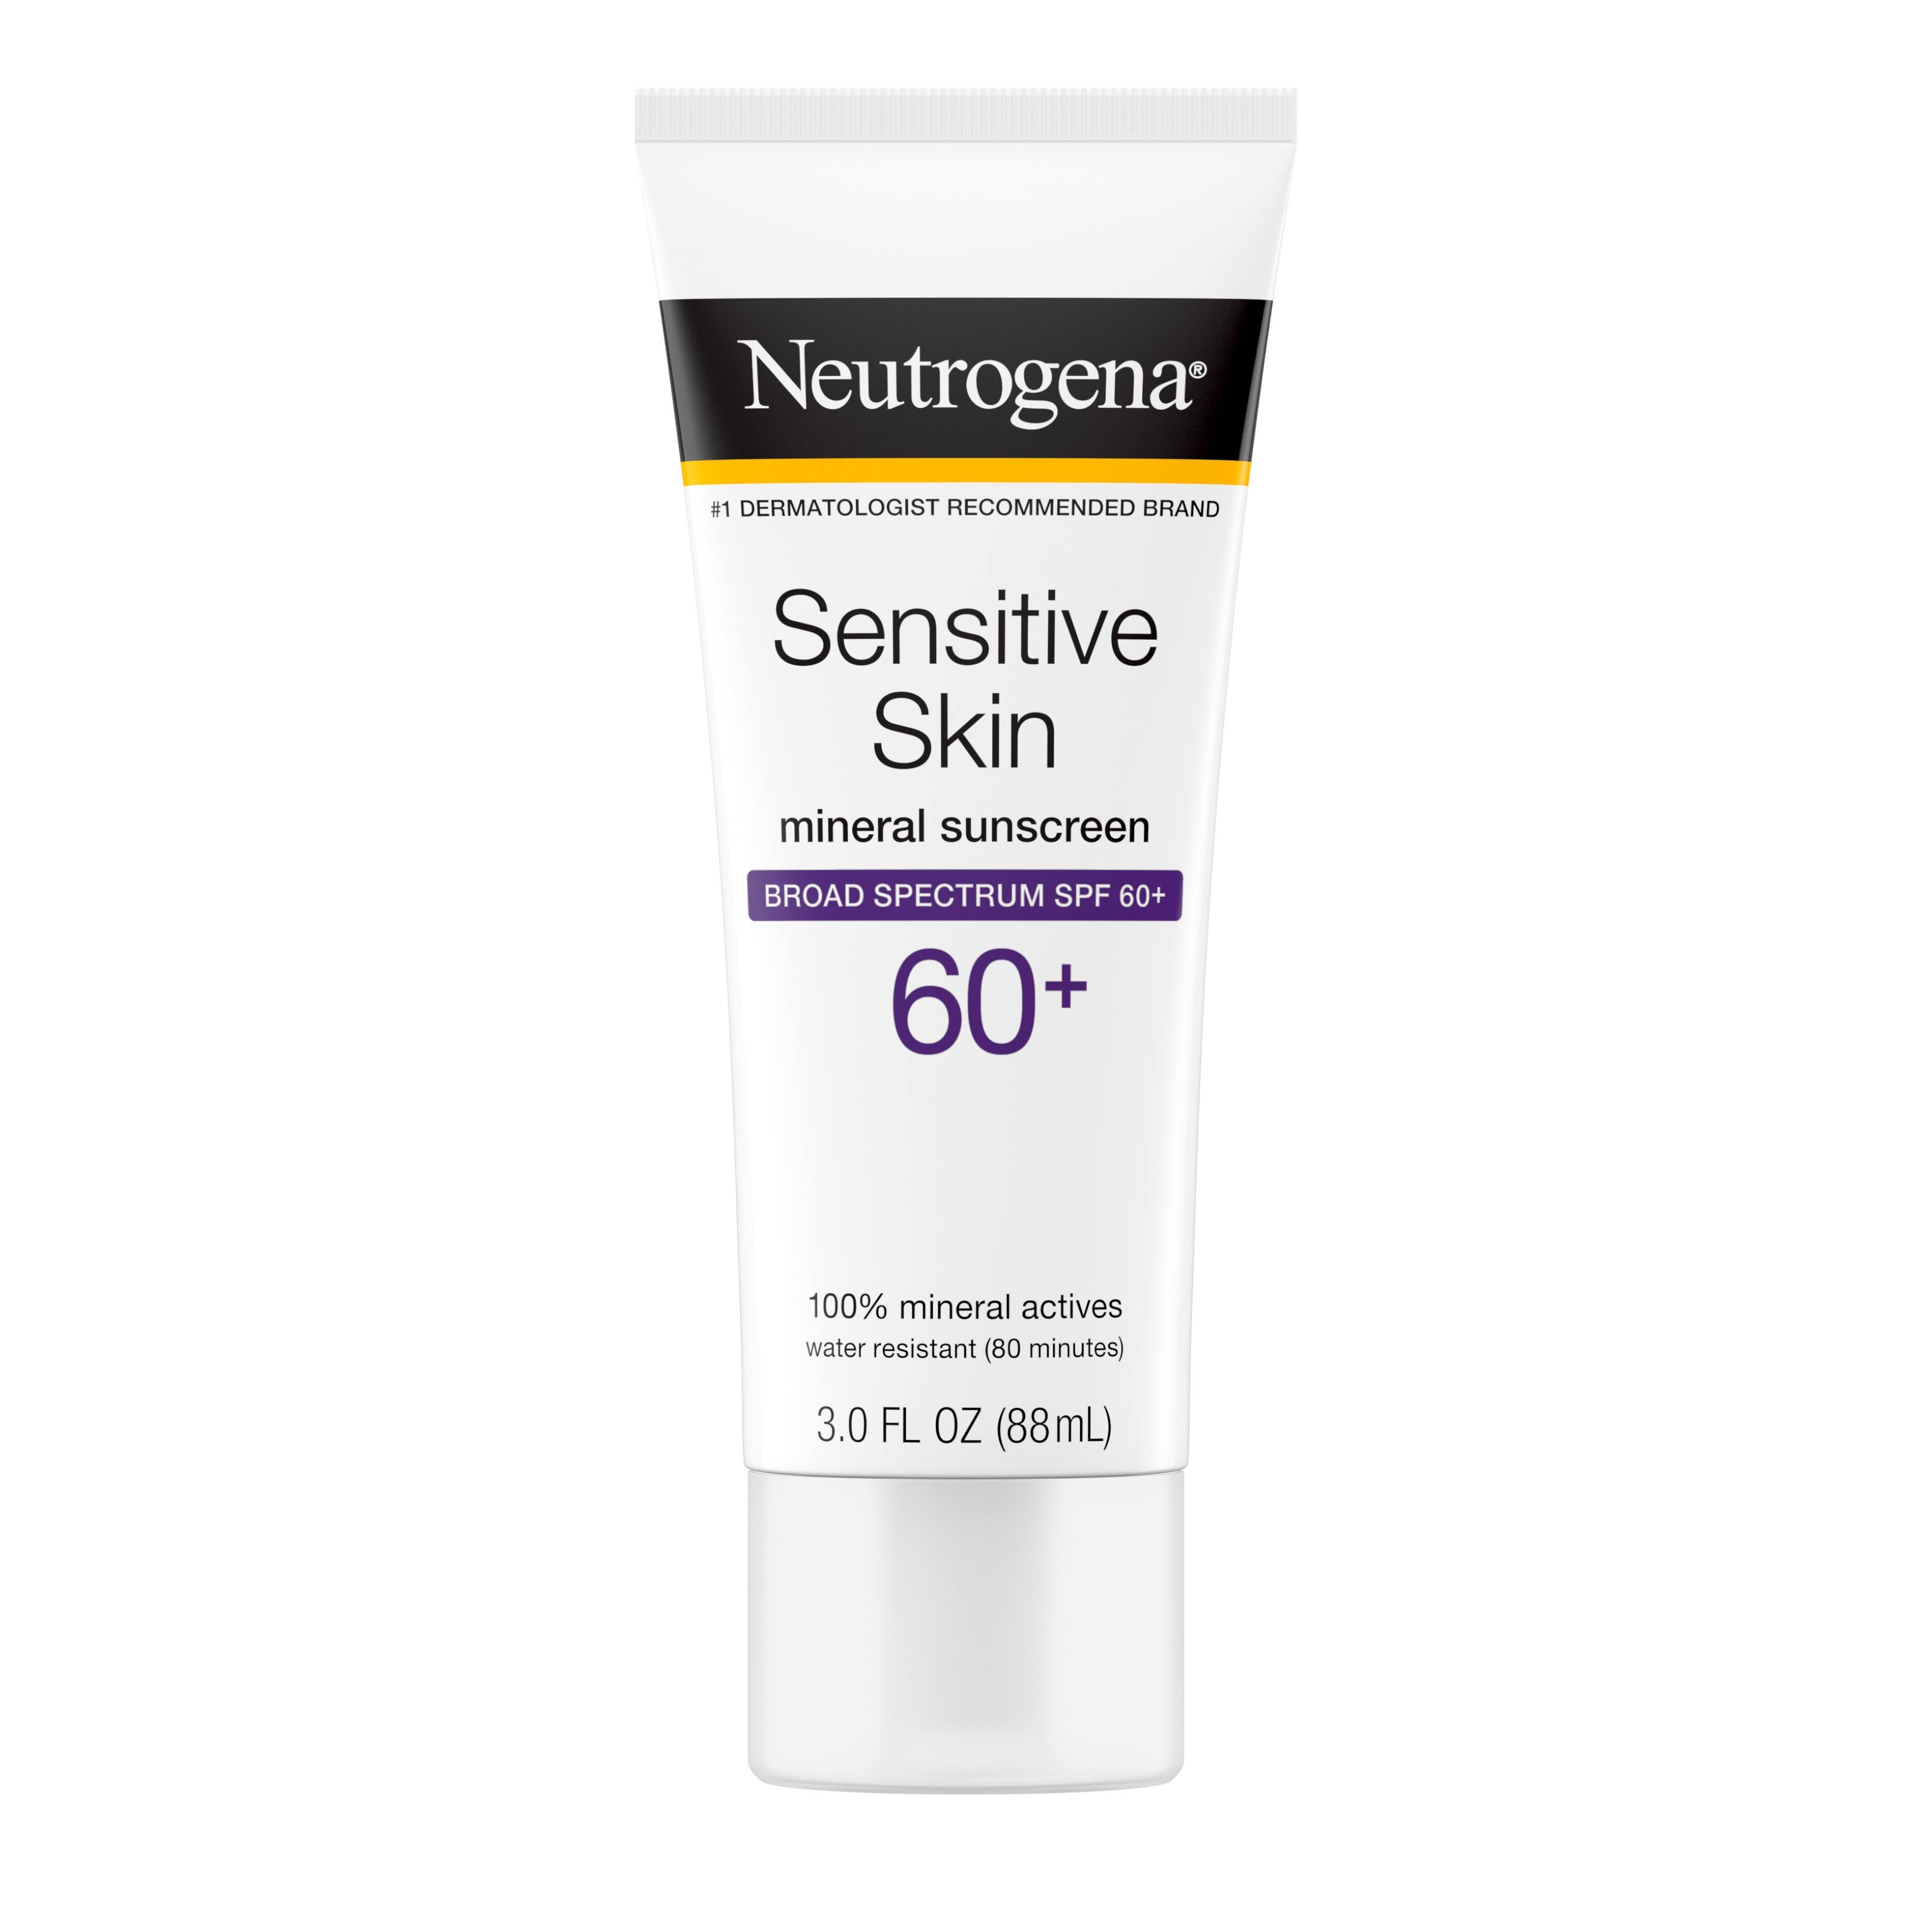 Neutrogena Sensitive Skin Sunscreen Lotion - SPF 60, 3oz